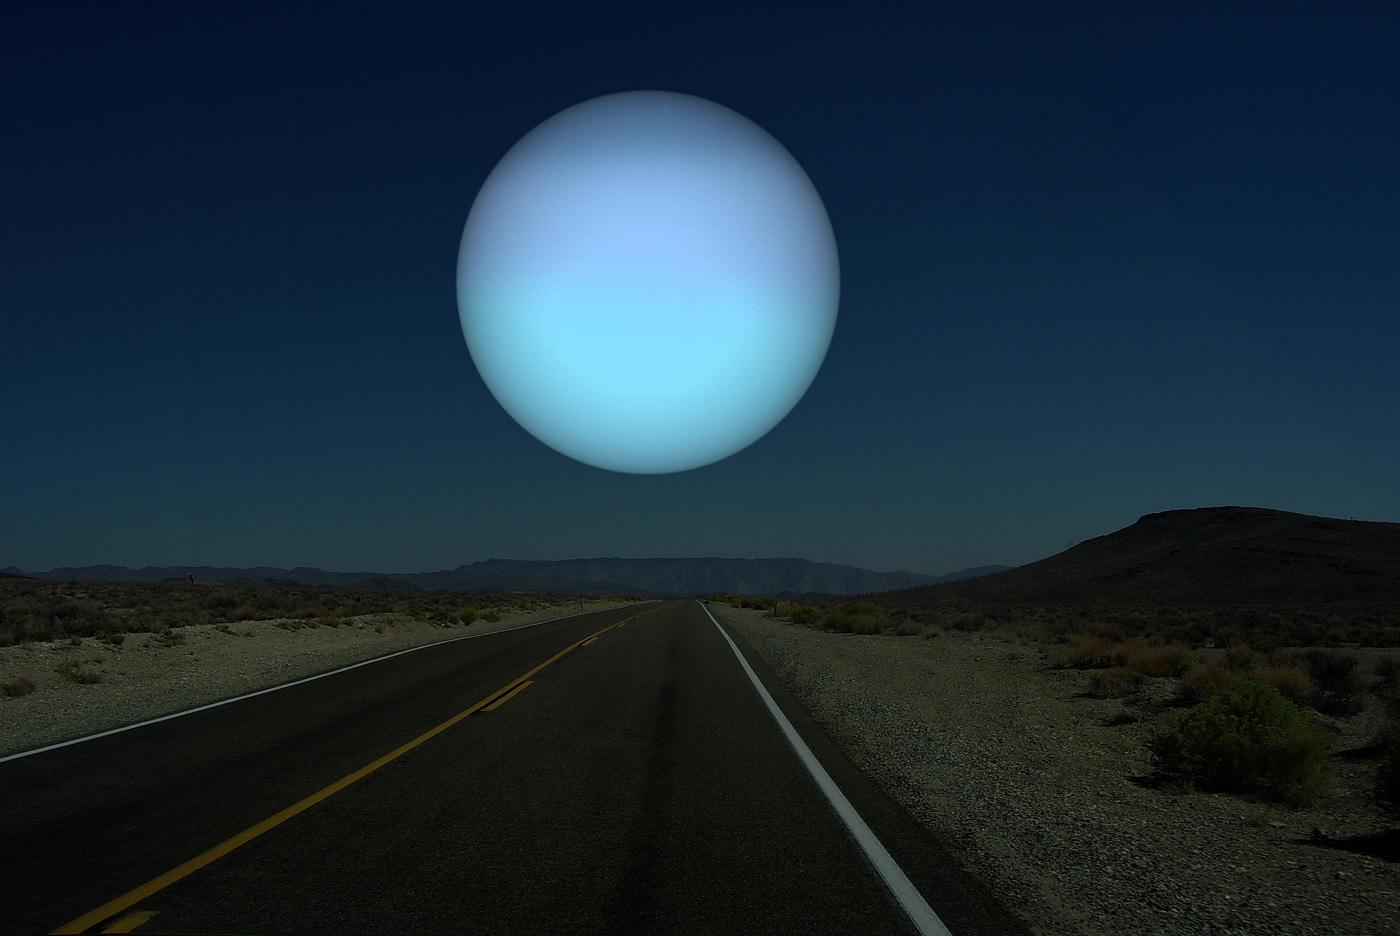 Uranus as Earth's Moon